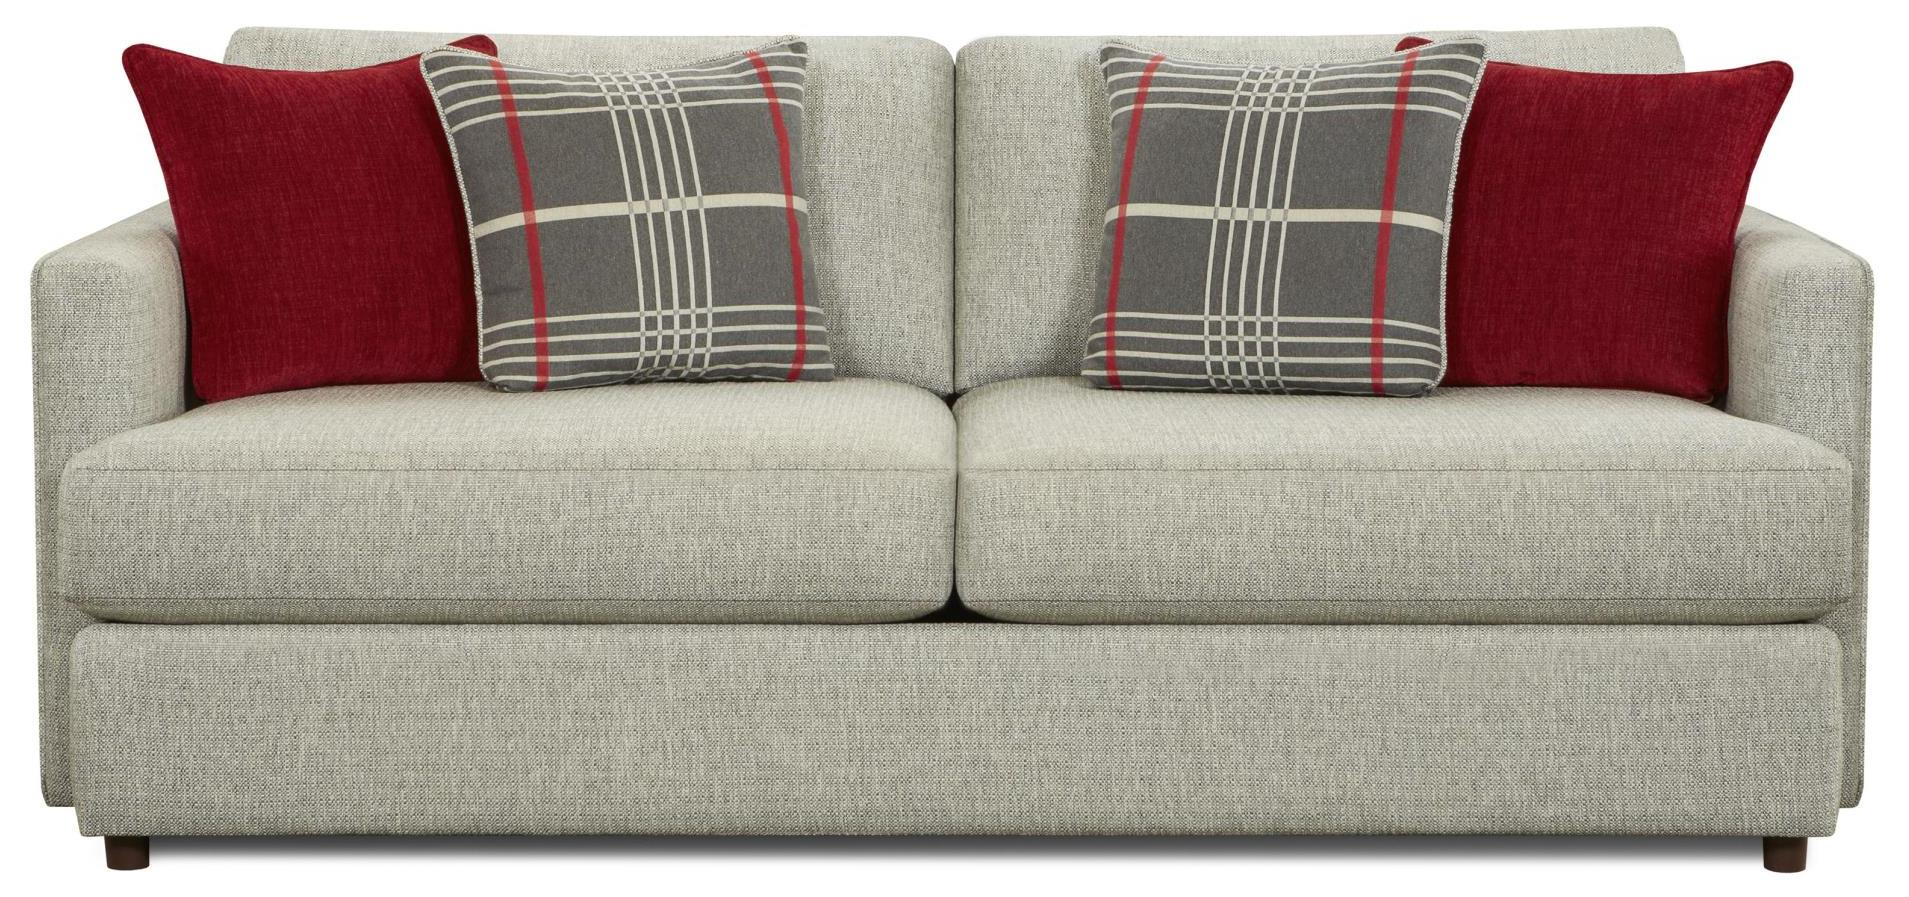 Fusion Furniture 1800 Contemporary Sofa with Track Arms